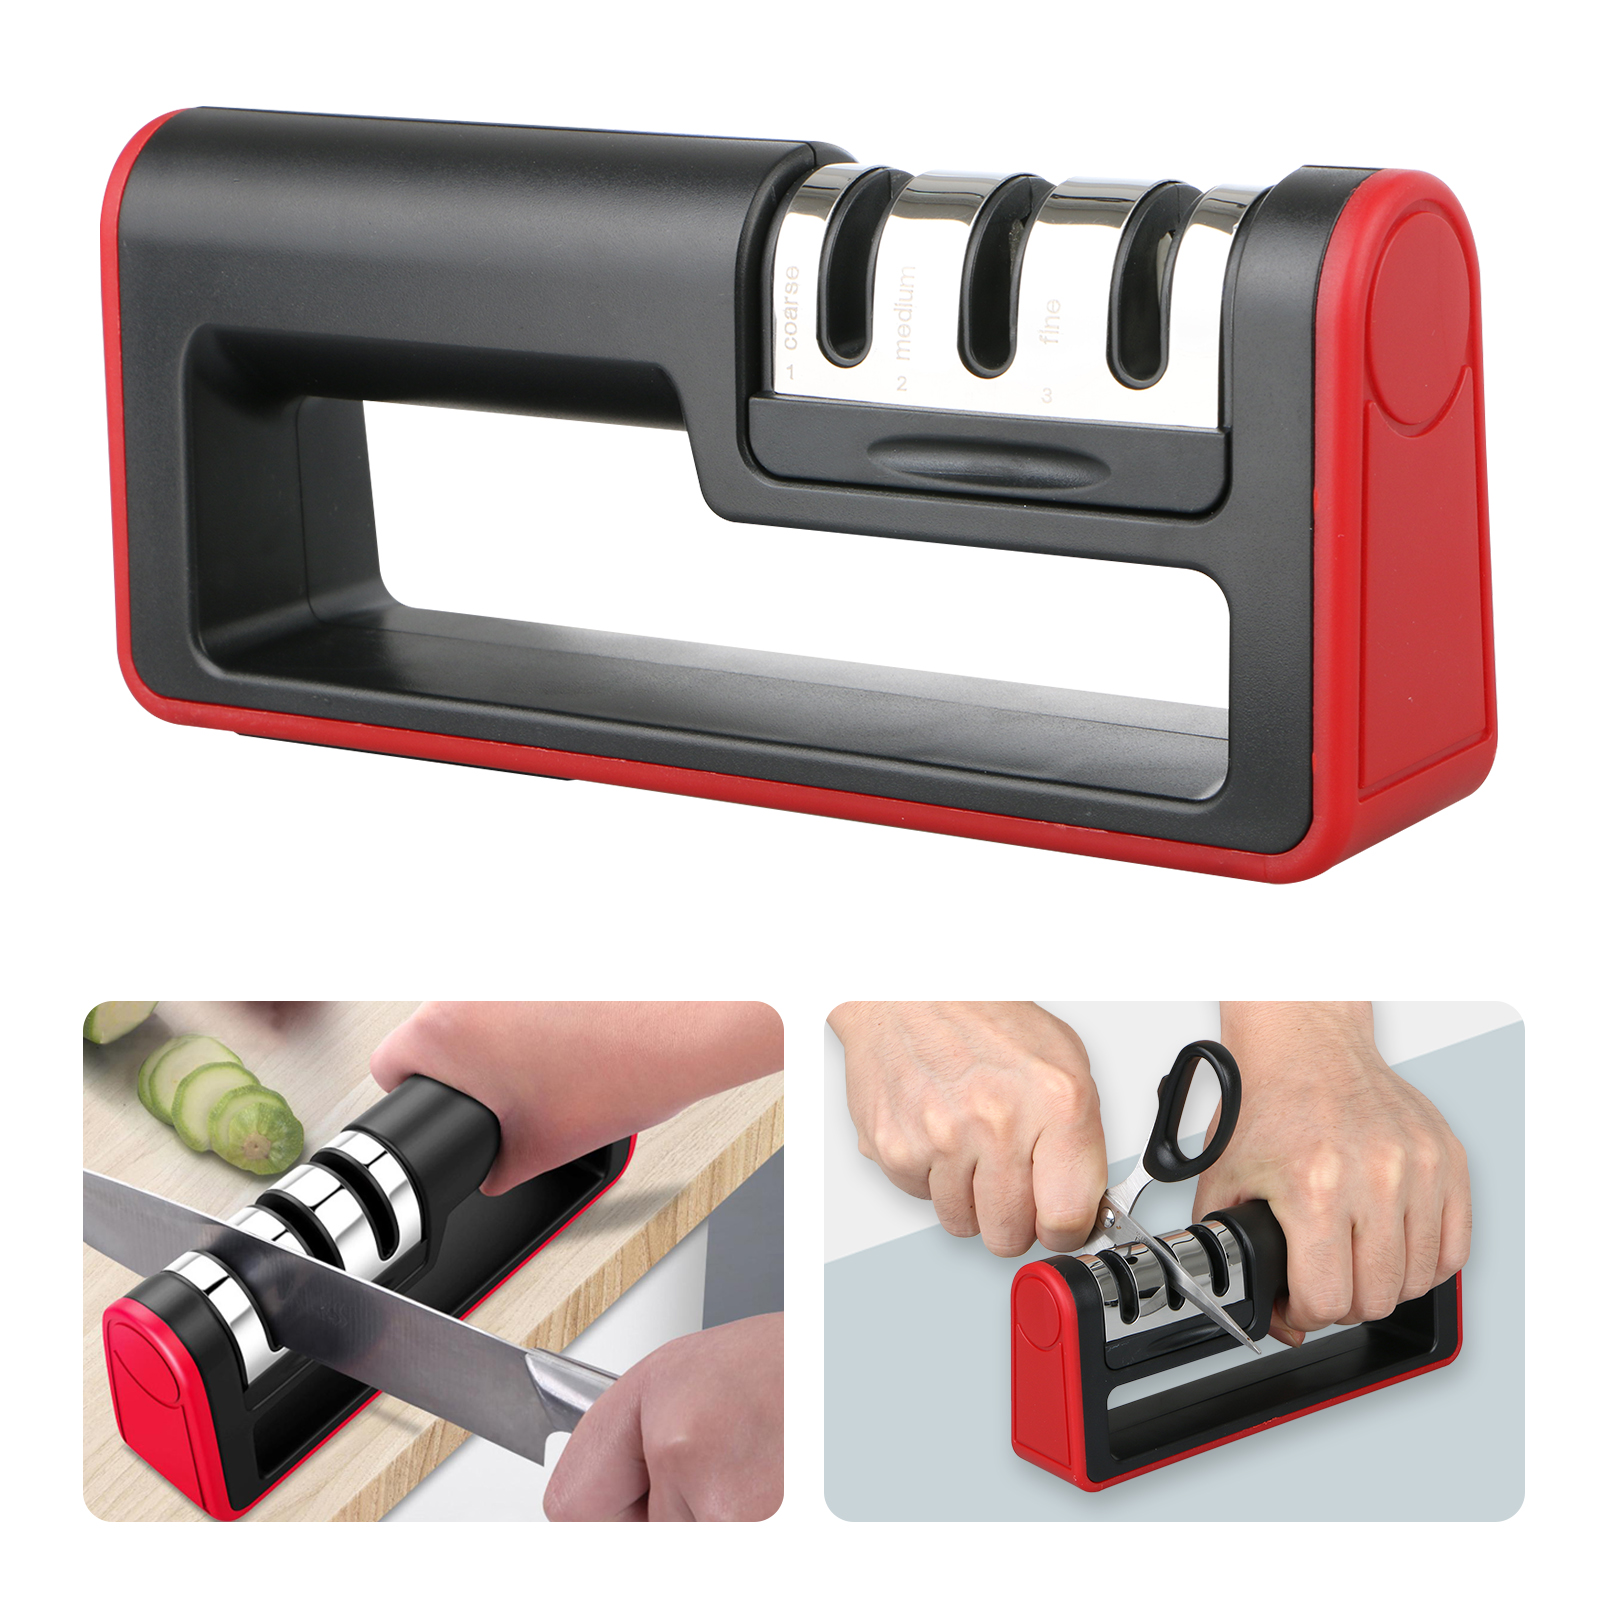 Knife Sharpener Kitchen Sharpening System Tool Non-Slip Rugged Grip 3 Stage